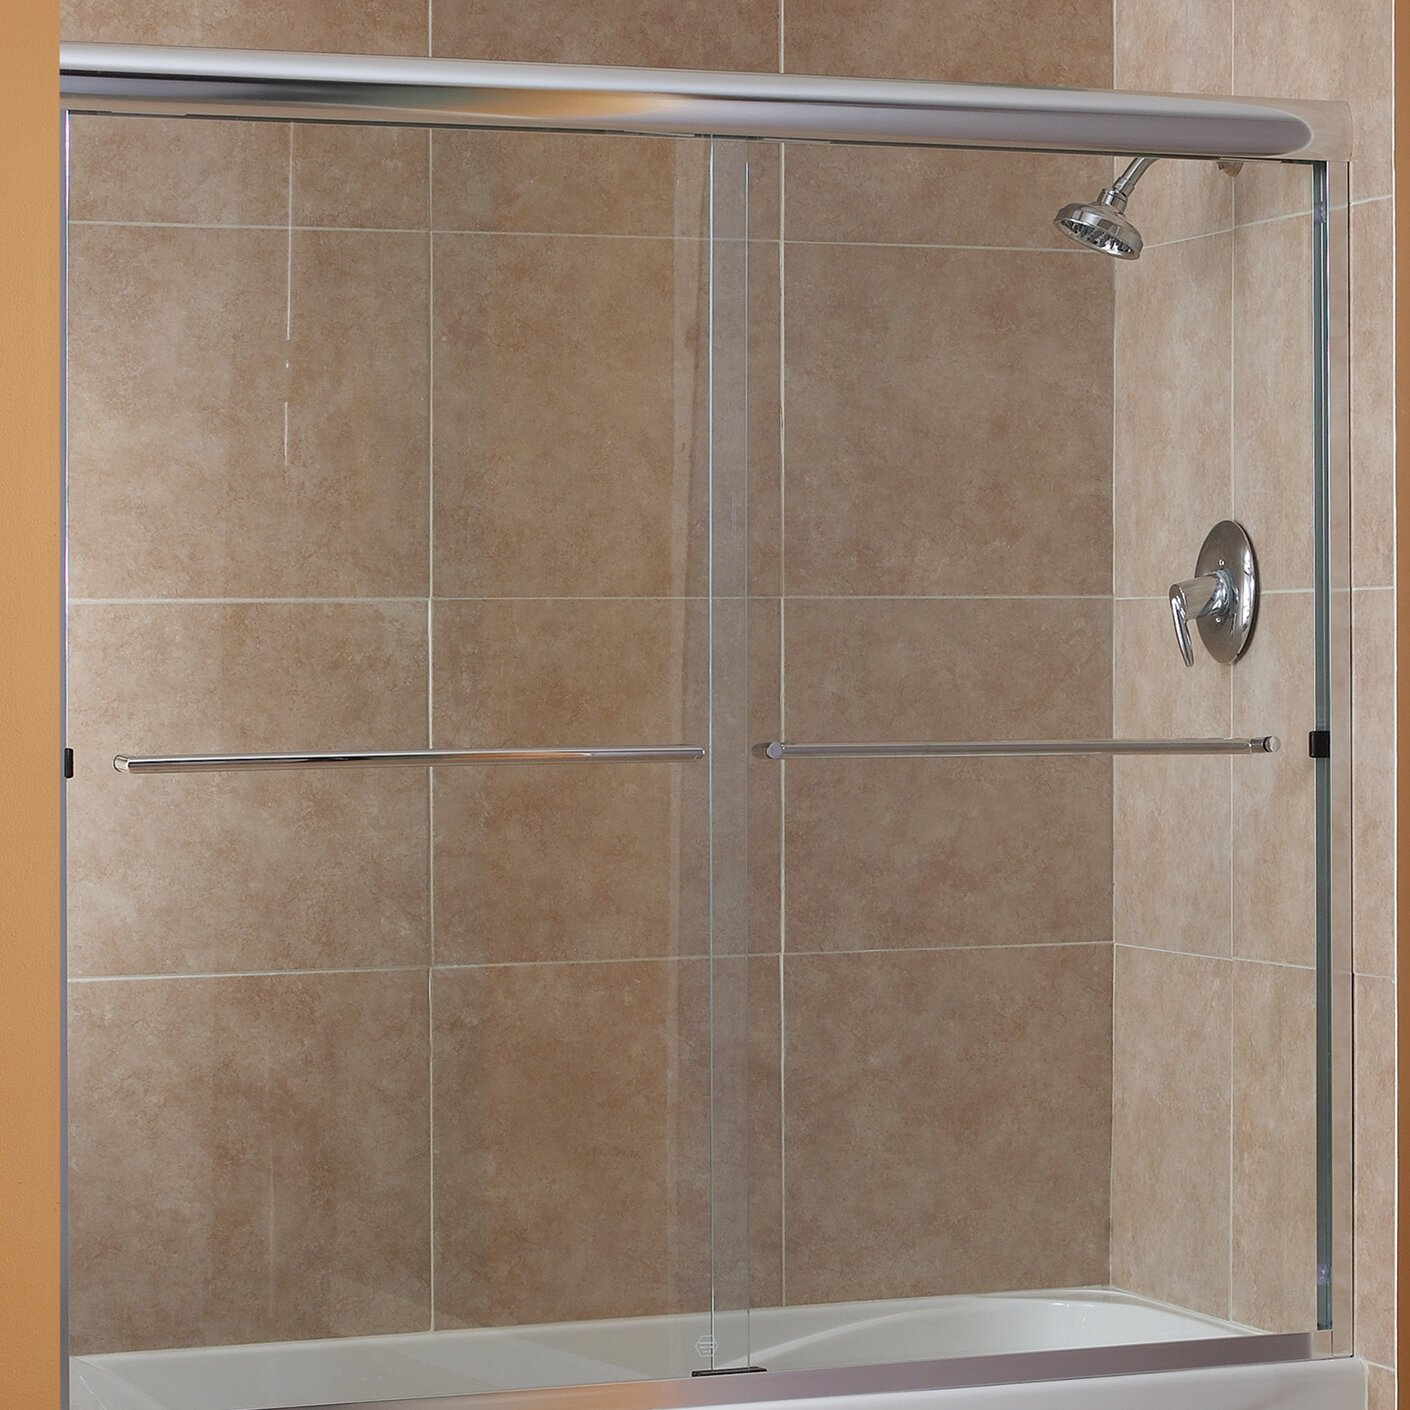 Foremost cove 55 x 50 54 frameless sliding tub door for Door 55 reviews